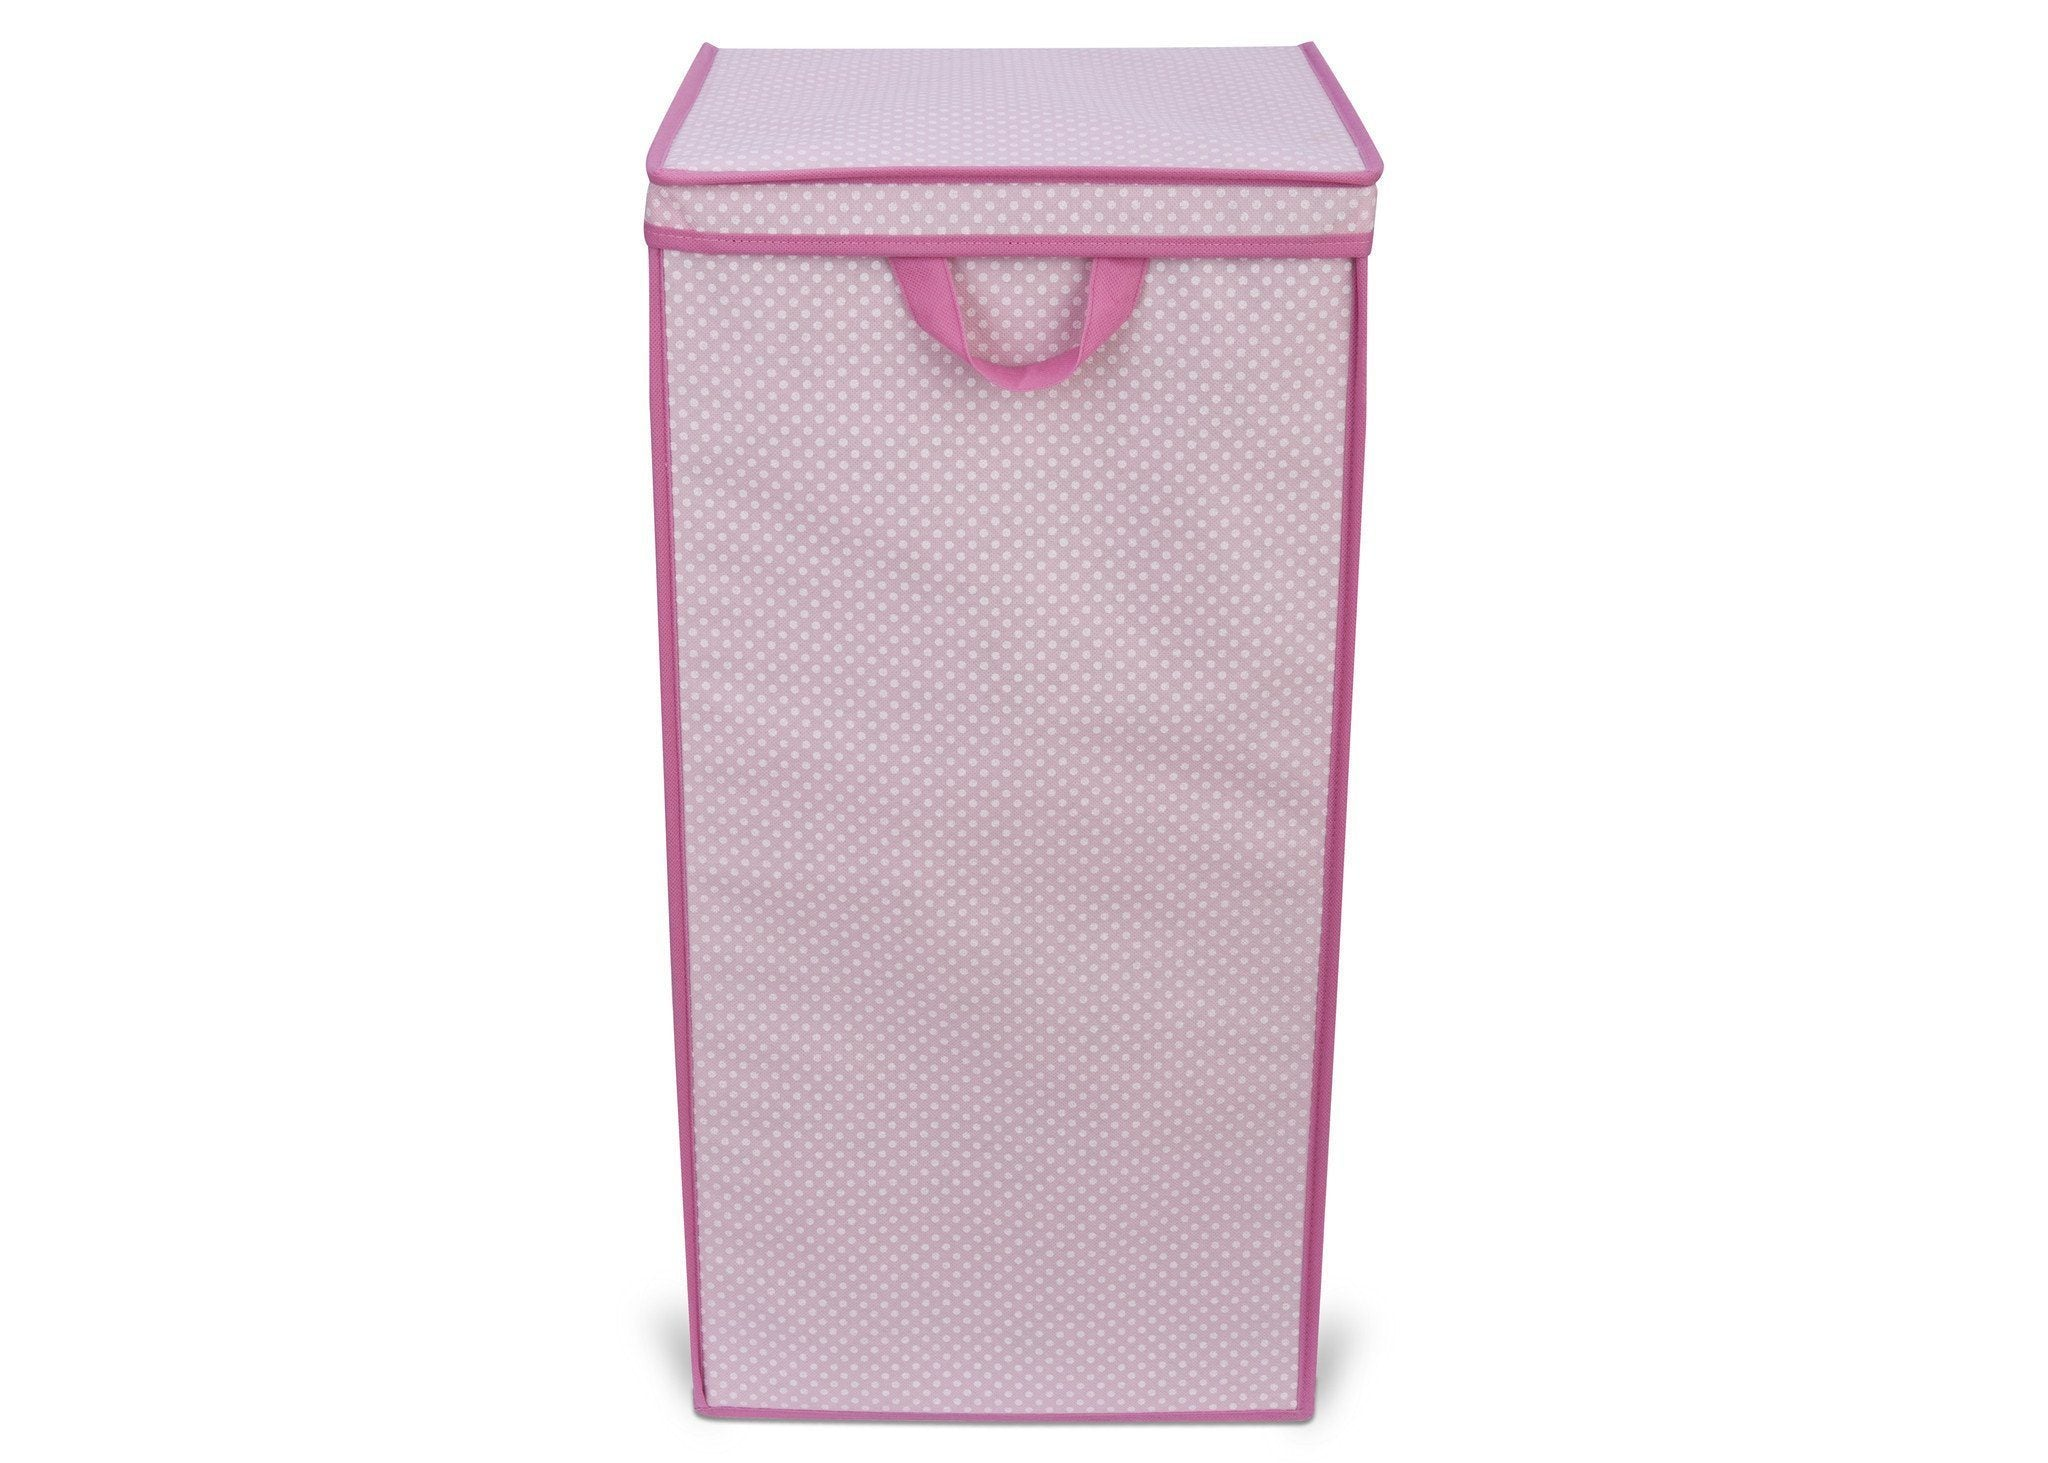 Delta Childern Barely Pink (689) Tall Hamper, Front View c2c